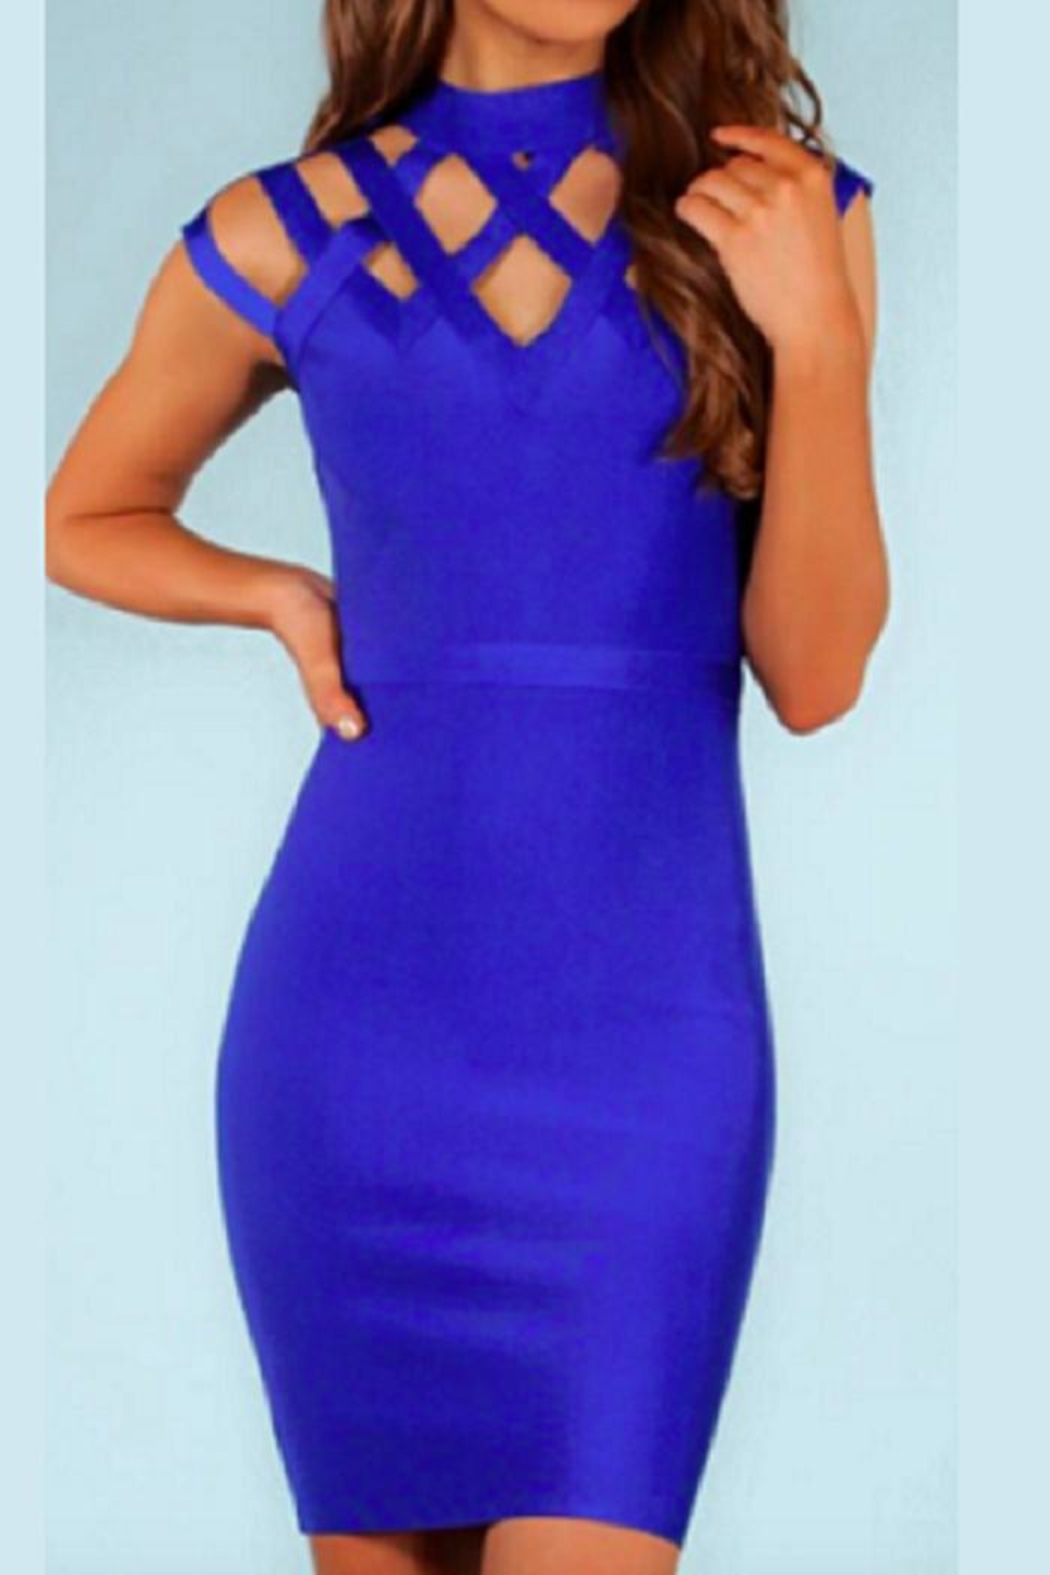 82e363e99a5d5b Wow Couture She's-Electric Bandage Dress from Massachusetts by ...